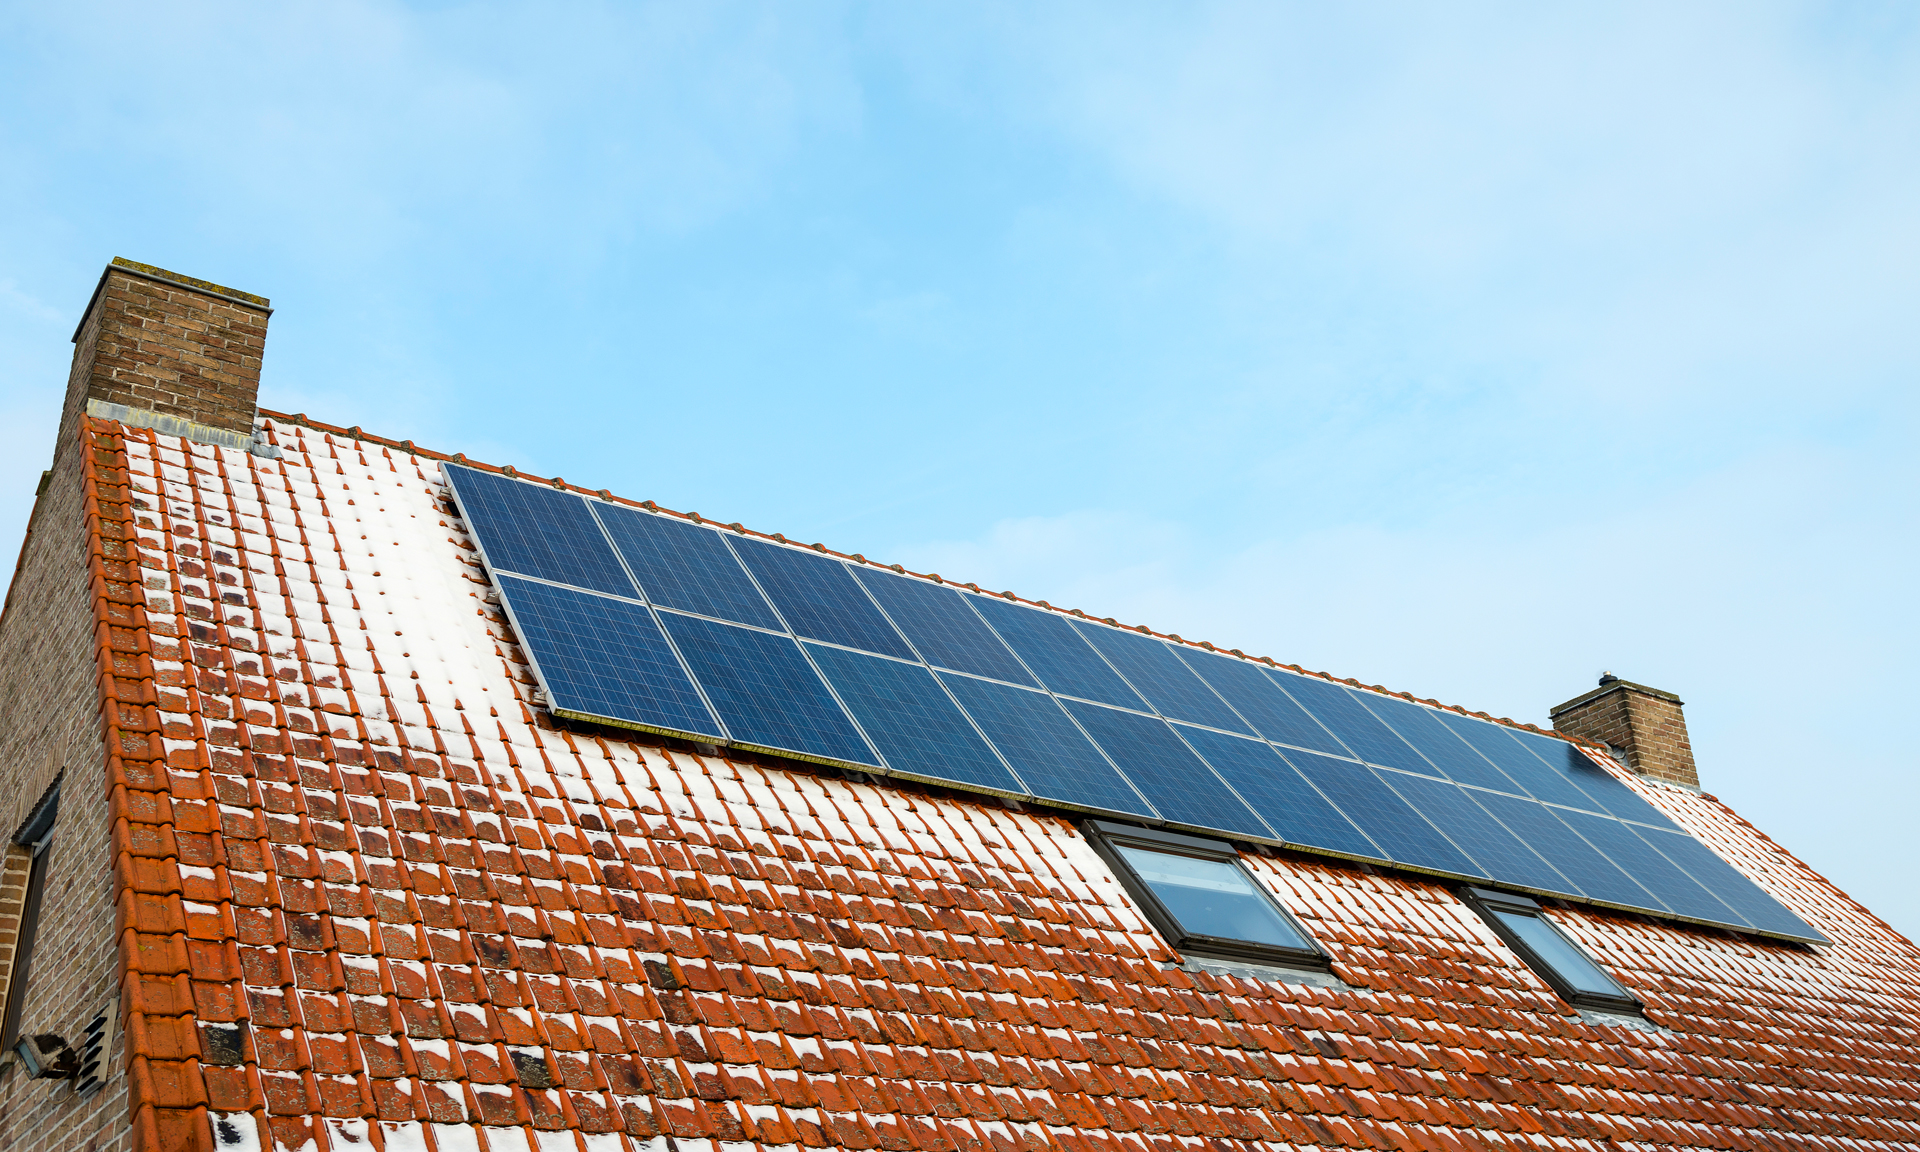 Solar Panels And Energy Storage The Next Big Thing Which News Batteries A Battery Isa Portable Electrical Supply Winter House